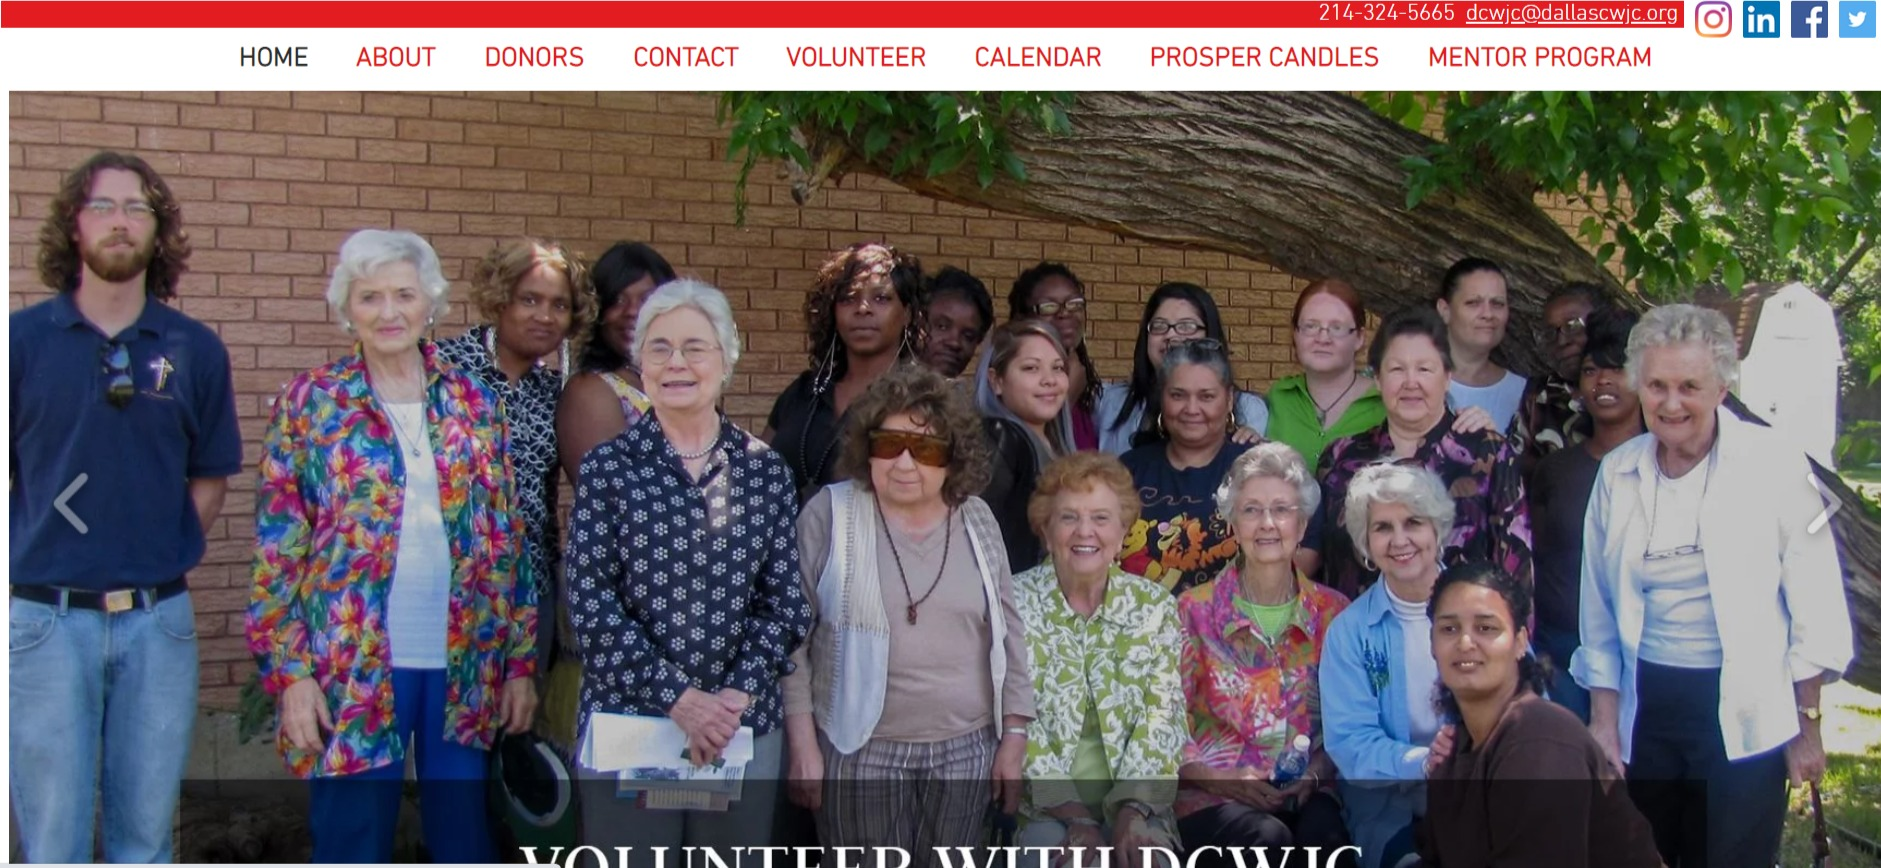 Dallas Christians Women's Job Corp